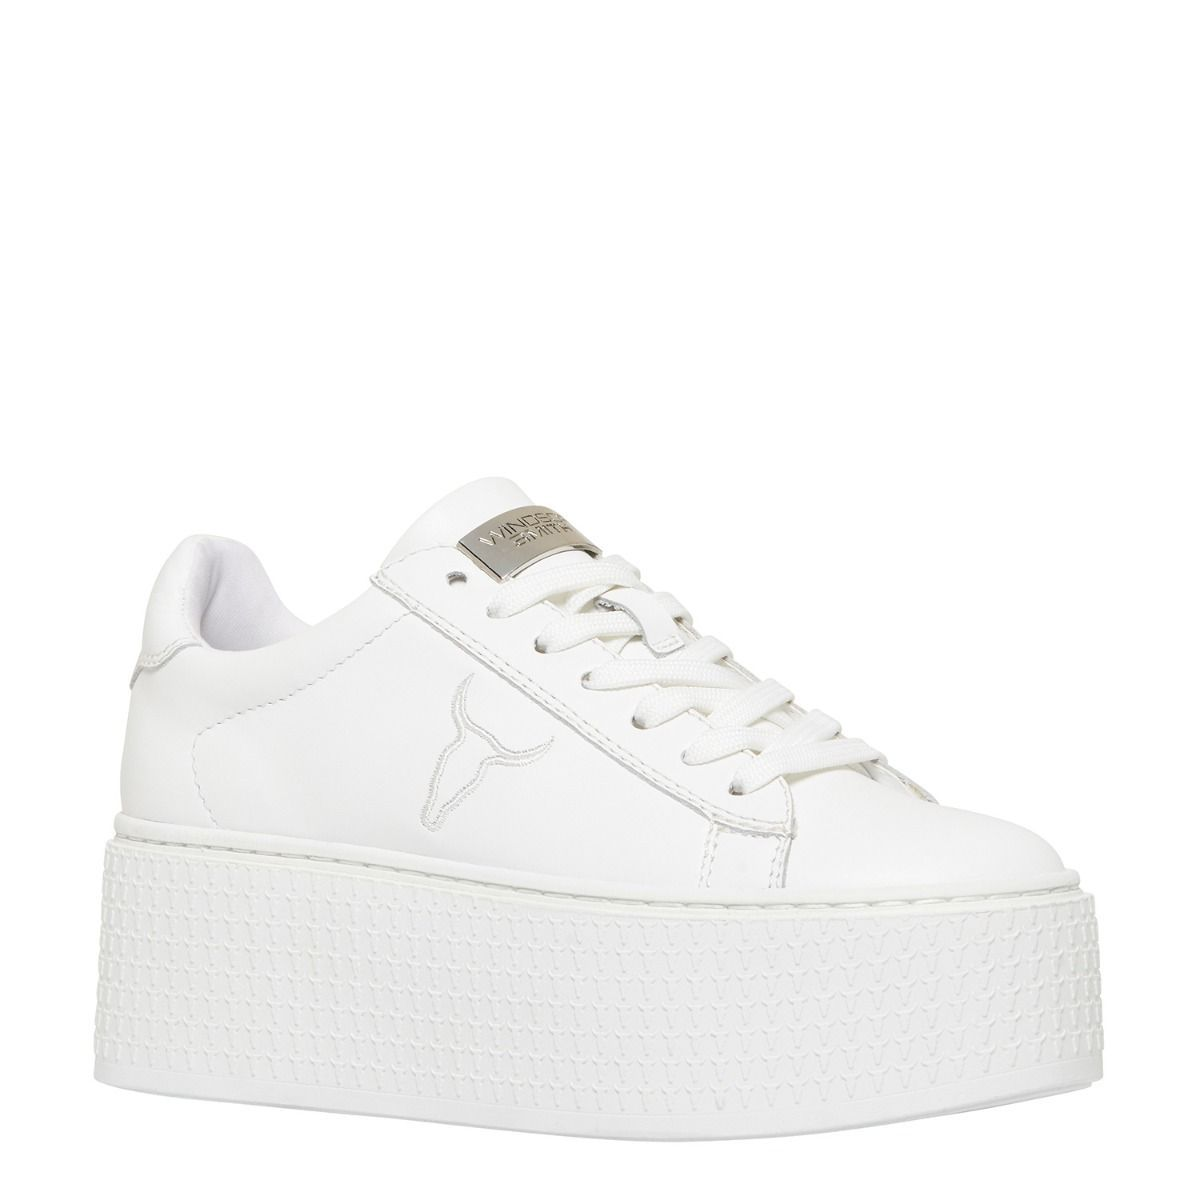 seoul-platform-sneakers-white-leather